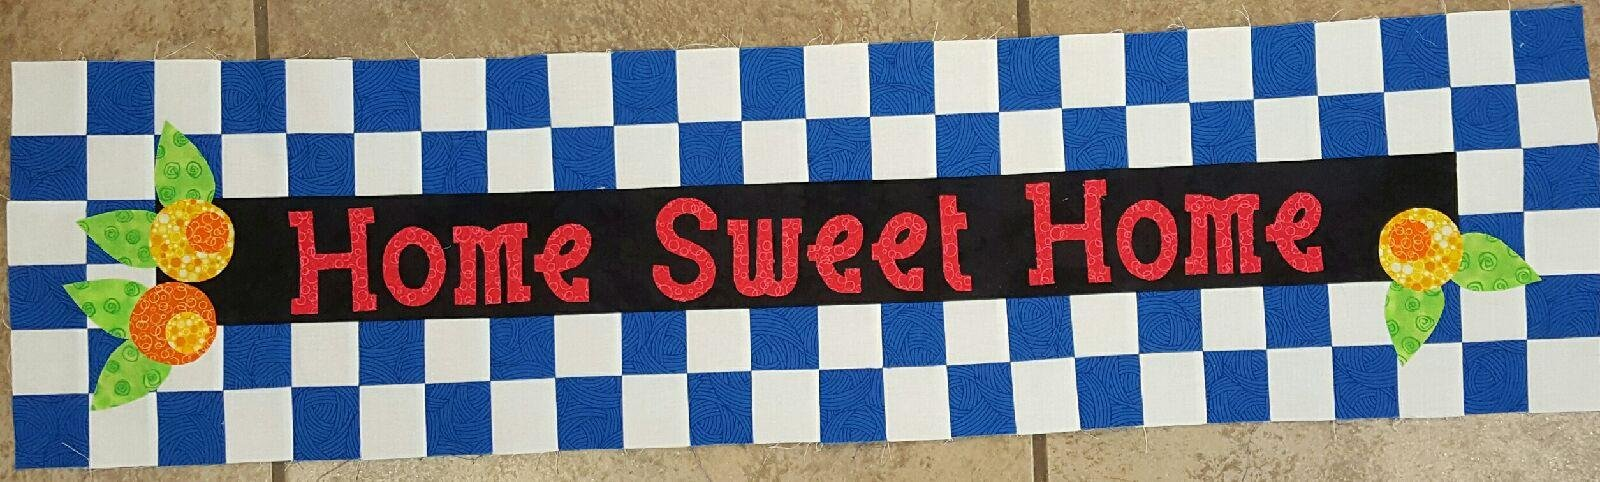 Row By Row Patterns - Home Sweet Home -Checkered Blue & Black